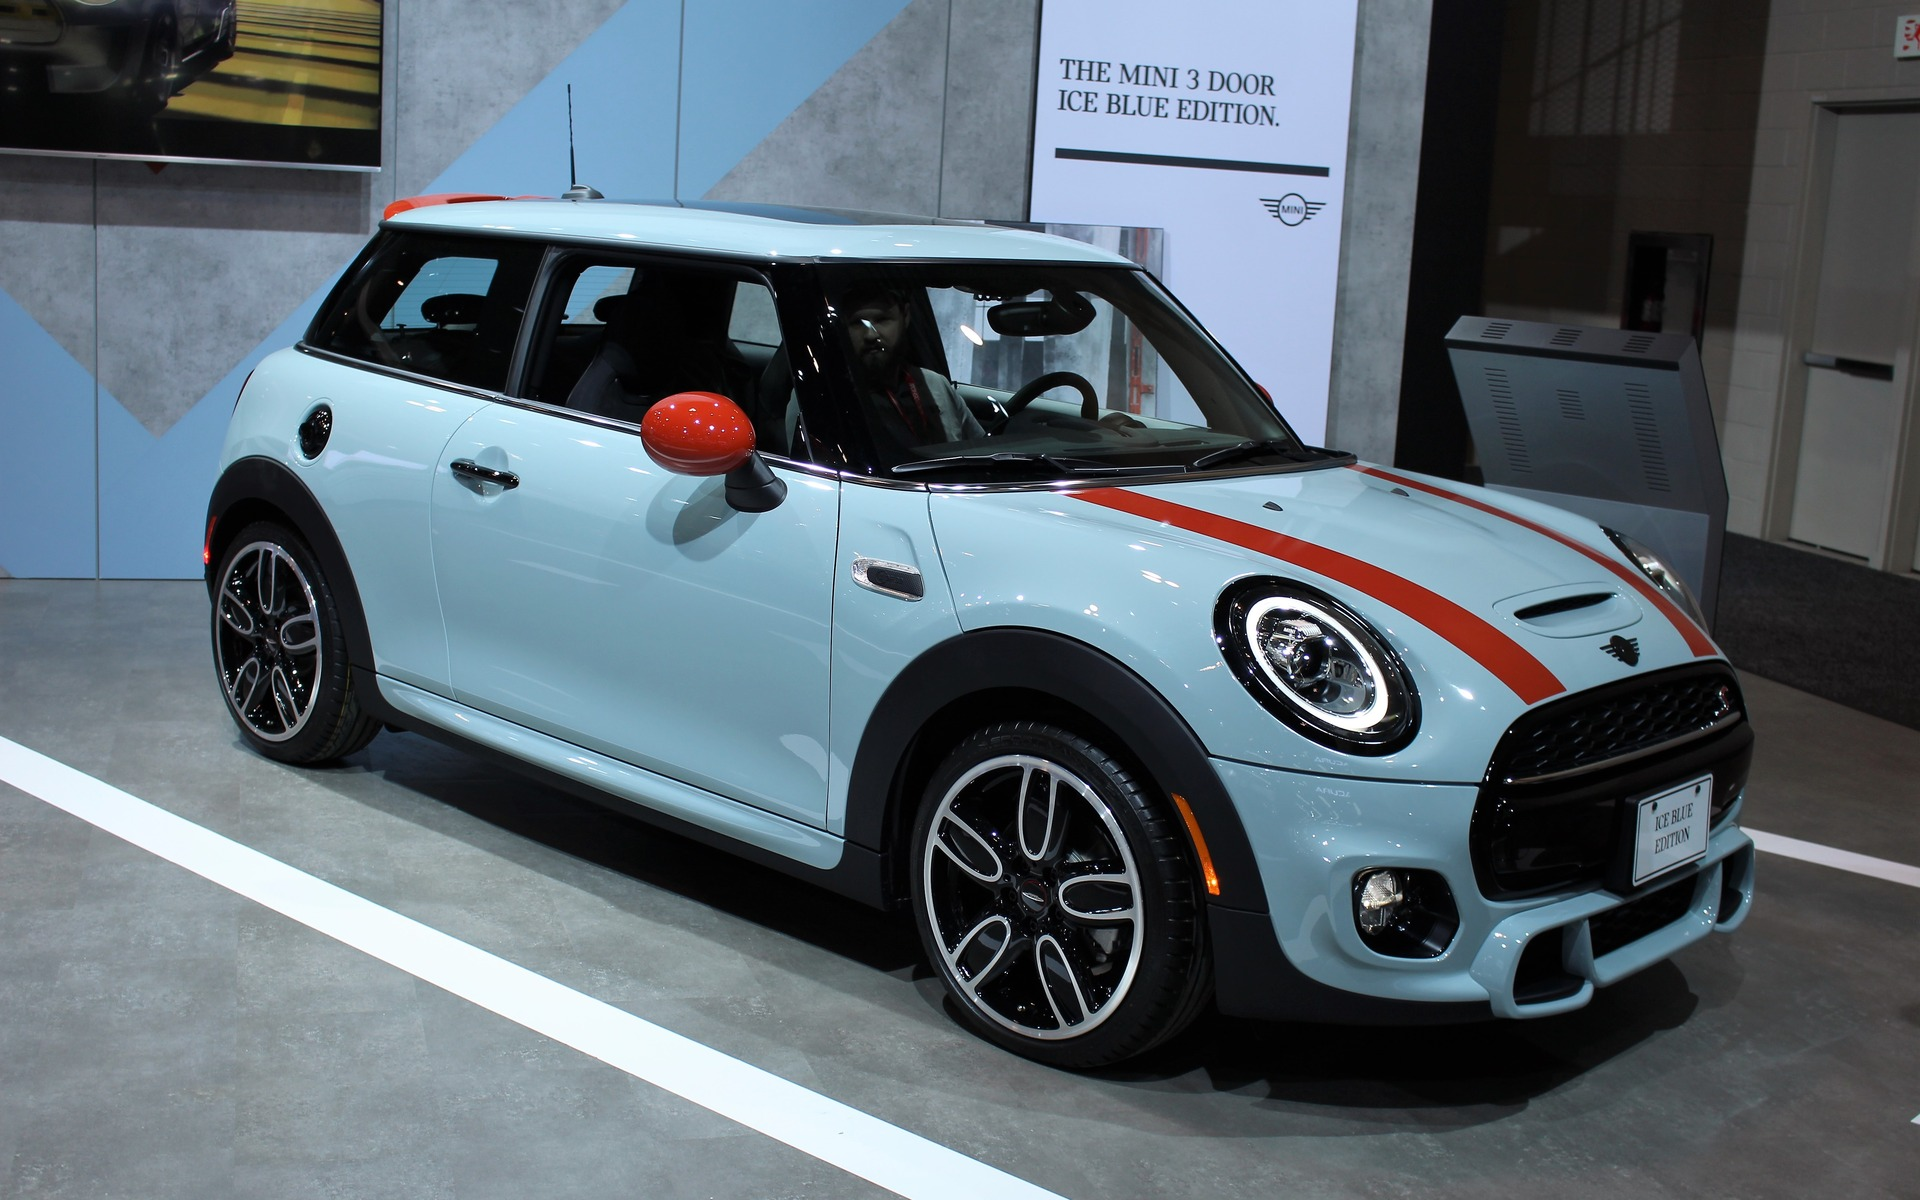 Mini Cooper S 3 Door Ice Blue Edition Launched In Toronto The Car